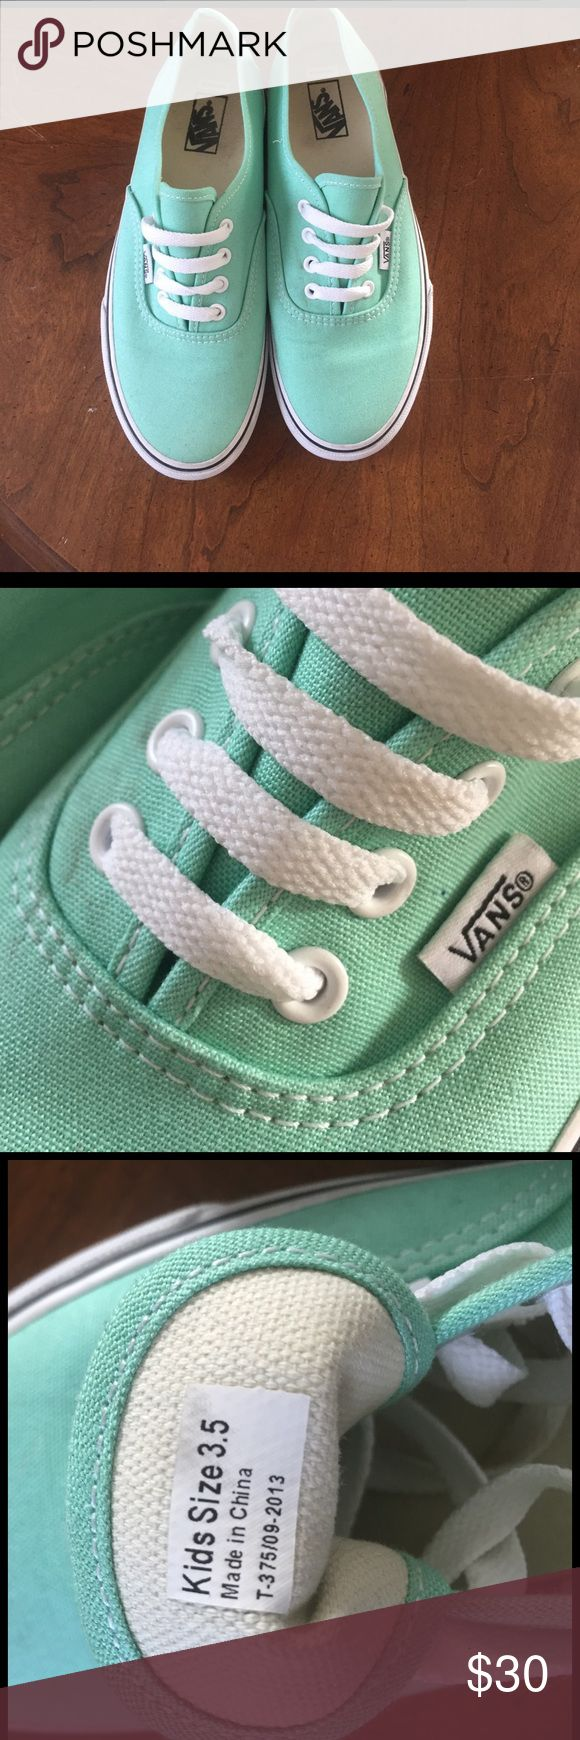 Teal Vans These vans have only been worn a couple times and the color is so cute. The size says kids 3.5 but they actually fit a women's size 6. They're perfect for a cute summer and spring look! #Vans #cute #summer #spring #casual #cheap Vans Shoes Sneakers